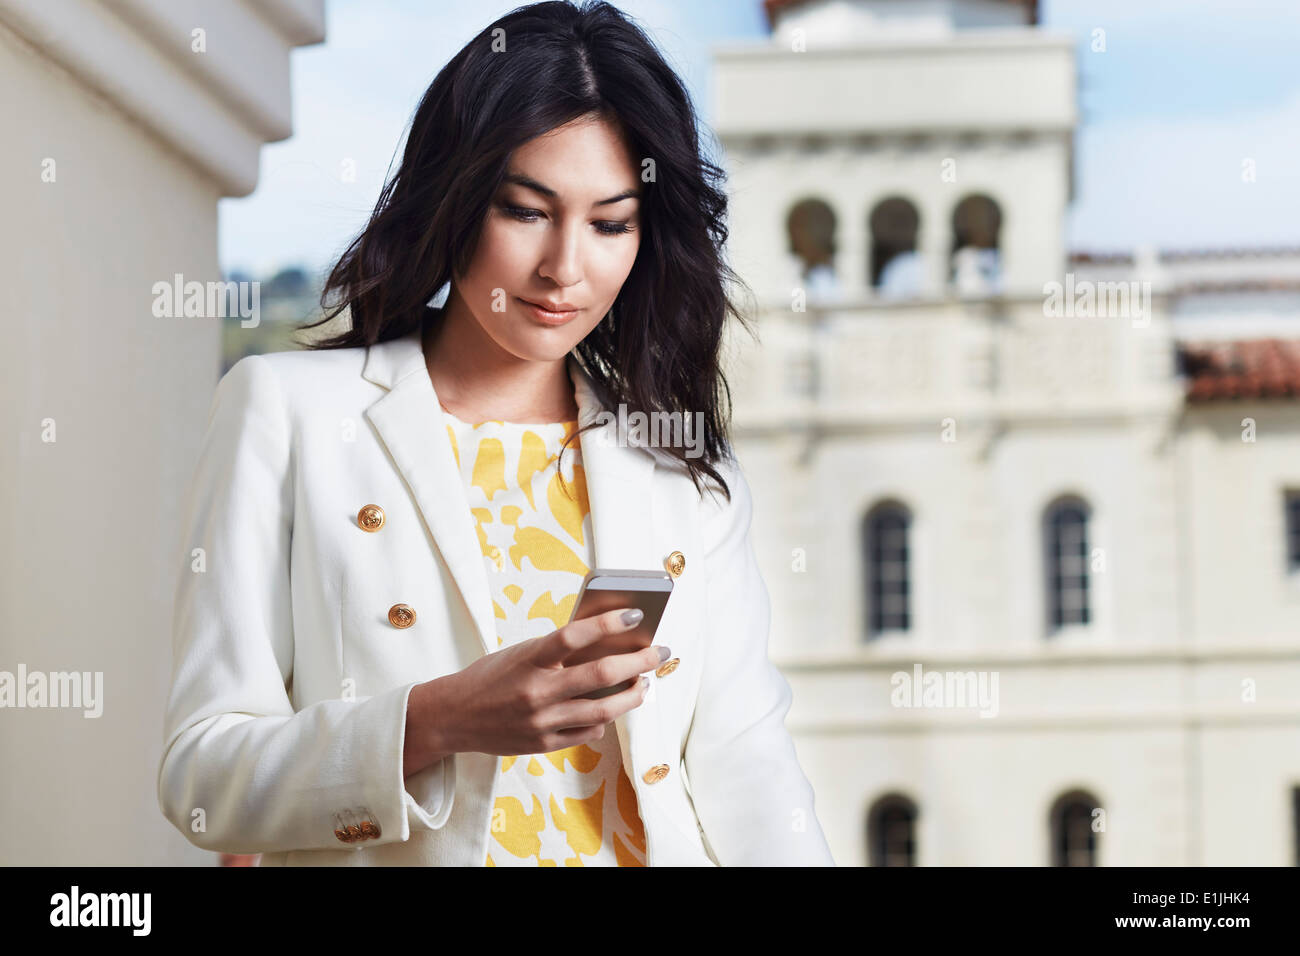 Young woman texting on smartphone - Stock Image